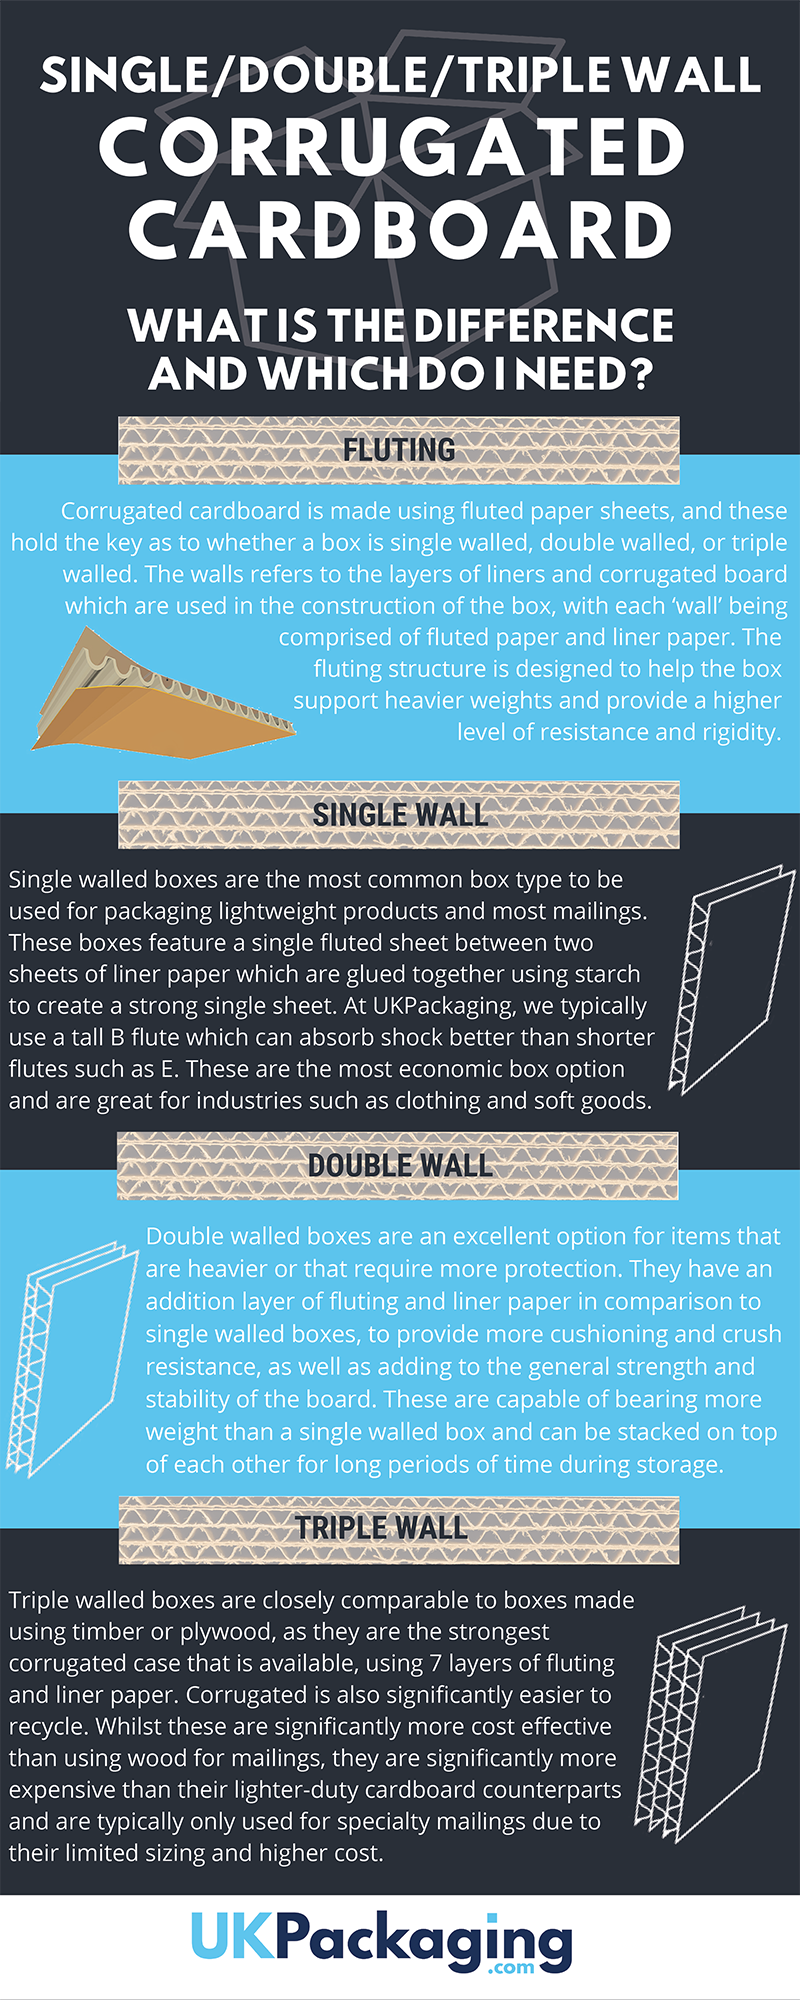 Infographic describing the difference between Single, Double and Triple Walled Cardboard